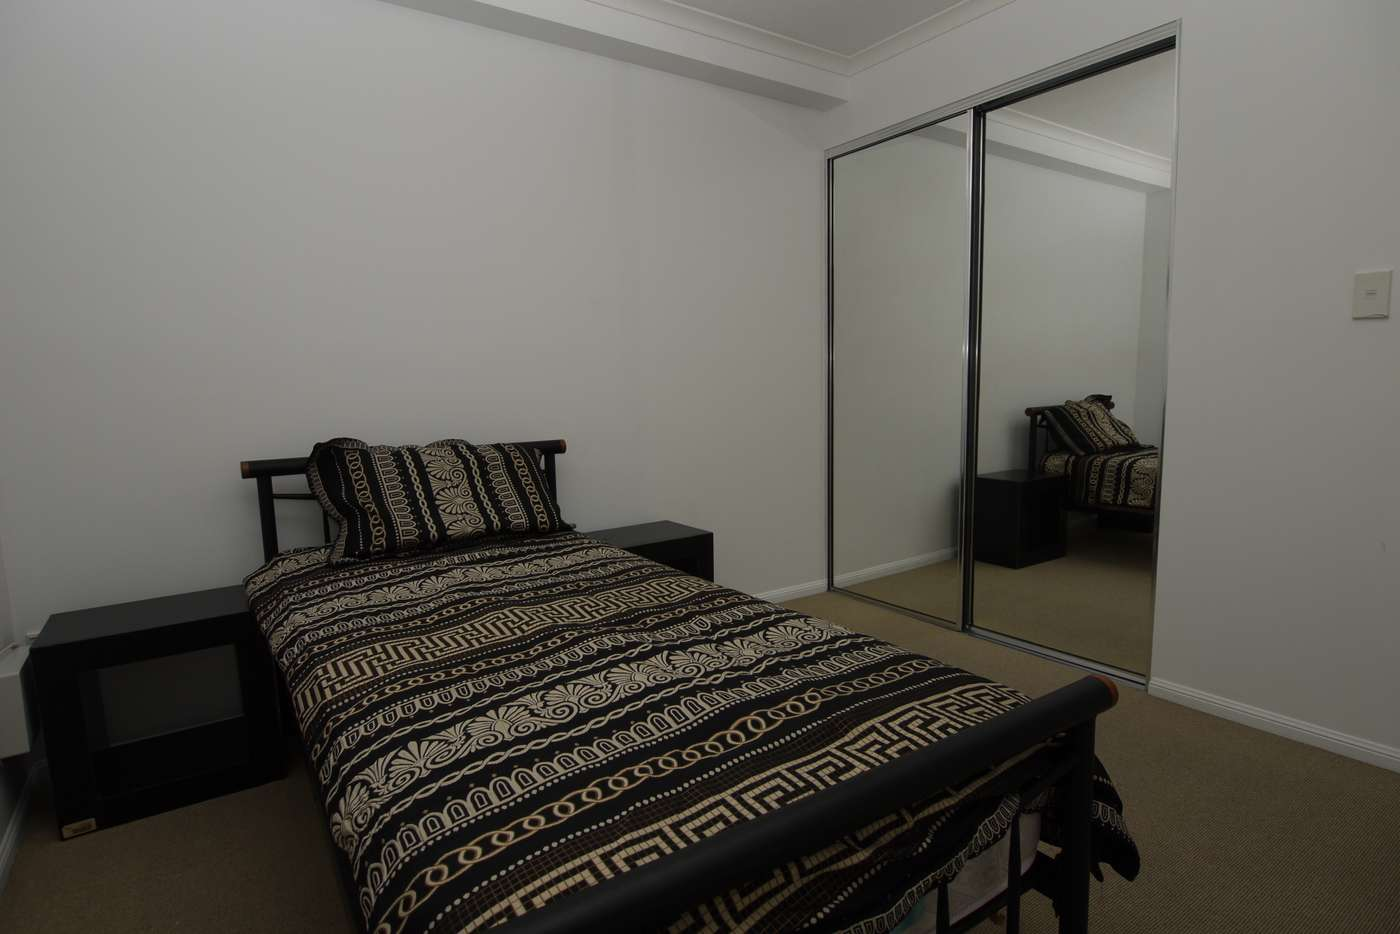 Sixth view of Homely apartment listing, 18/11-17 Stanley Street, Townsville City QLD 4810